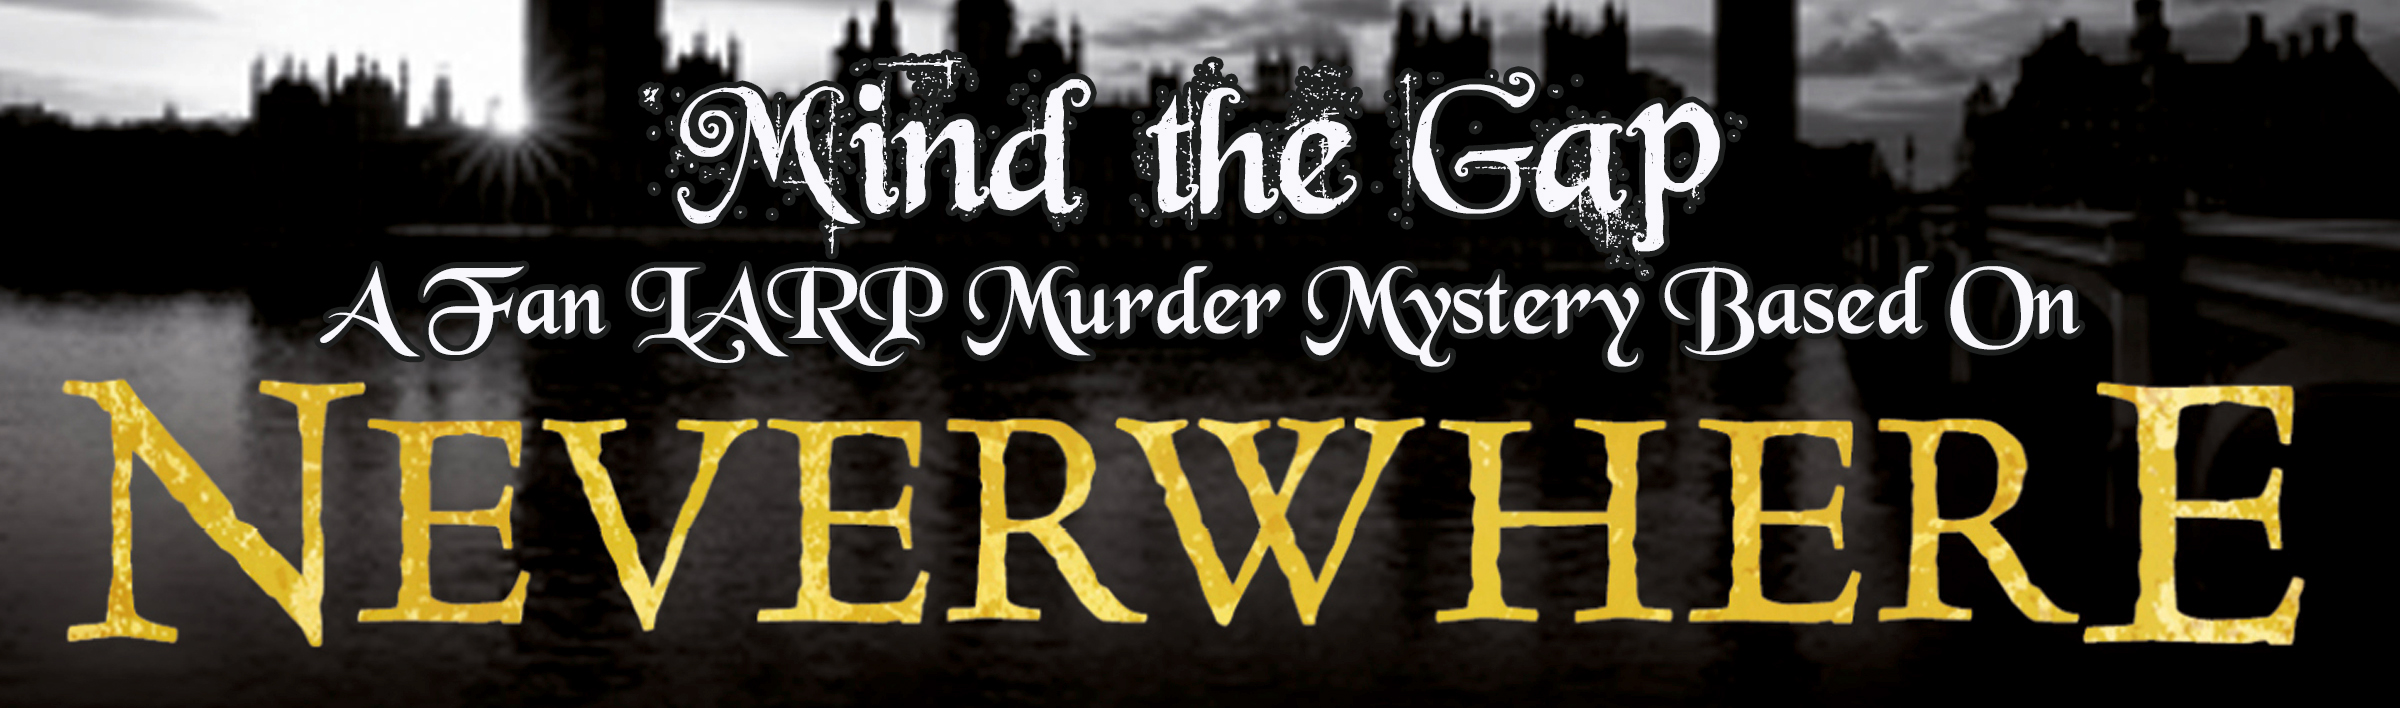 Neverwhere - Mind the Gap Fan LARP - Single Event 2014